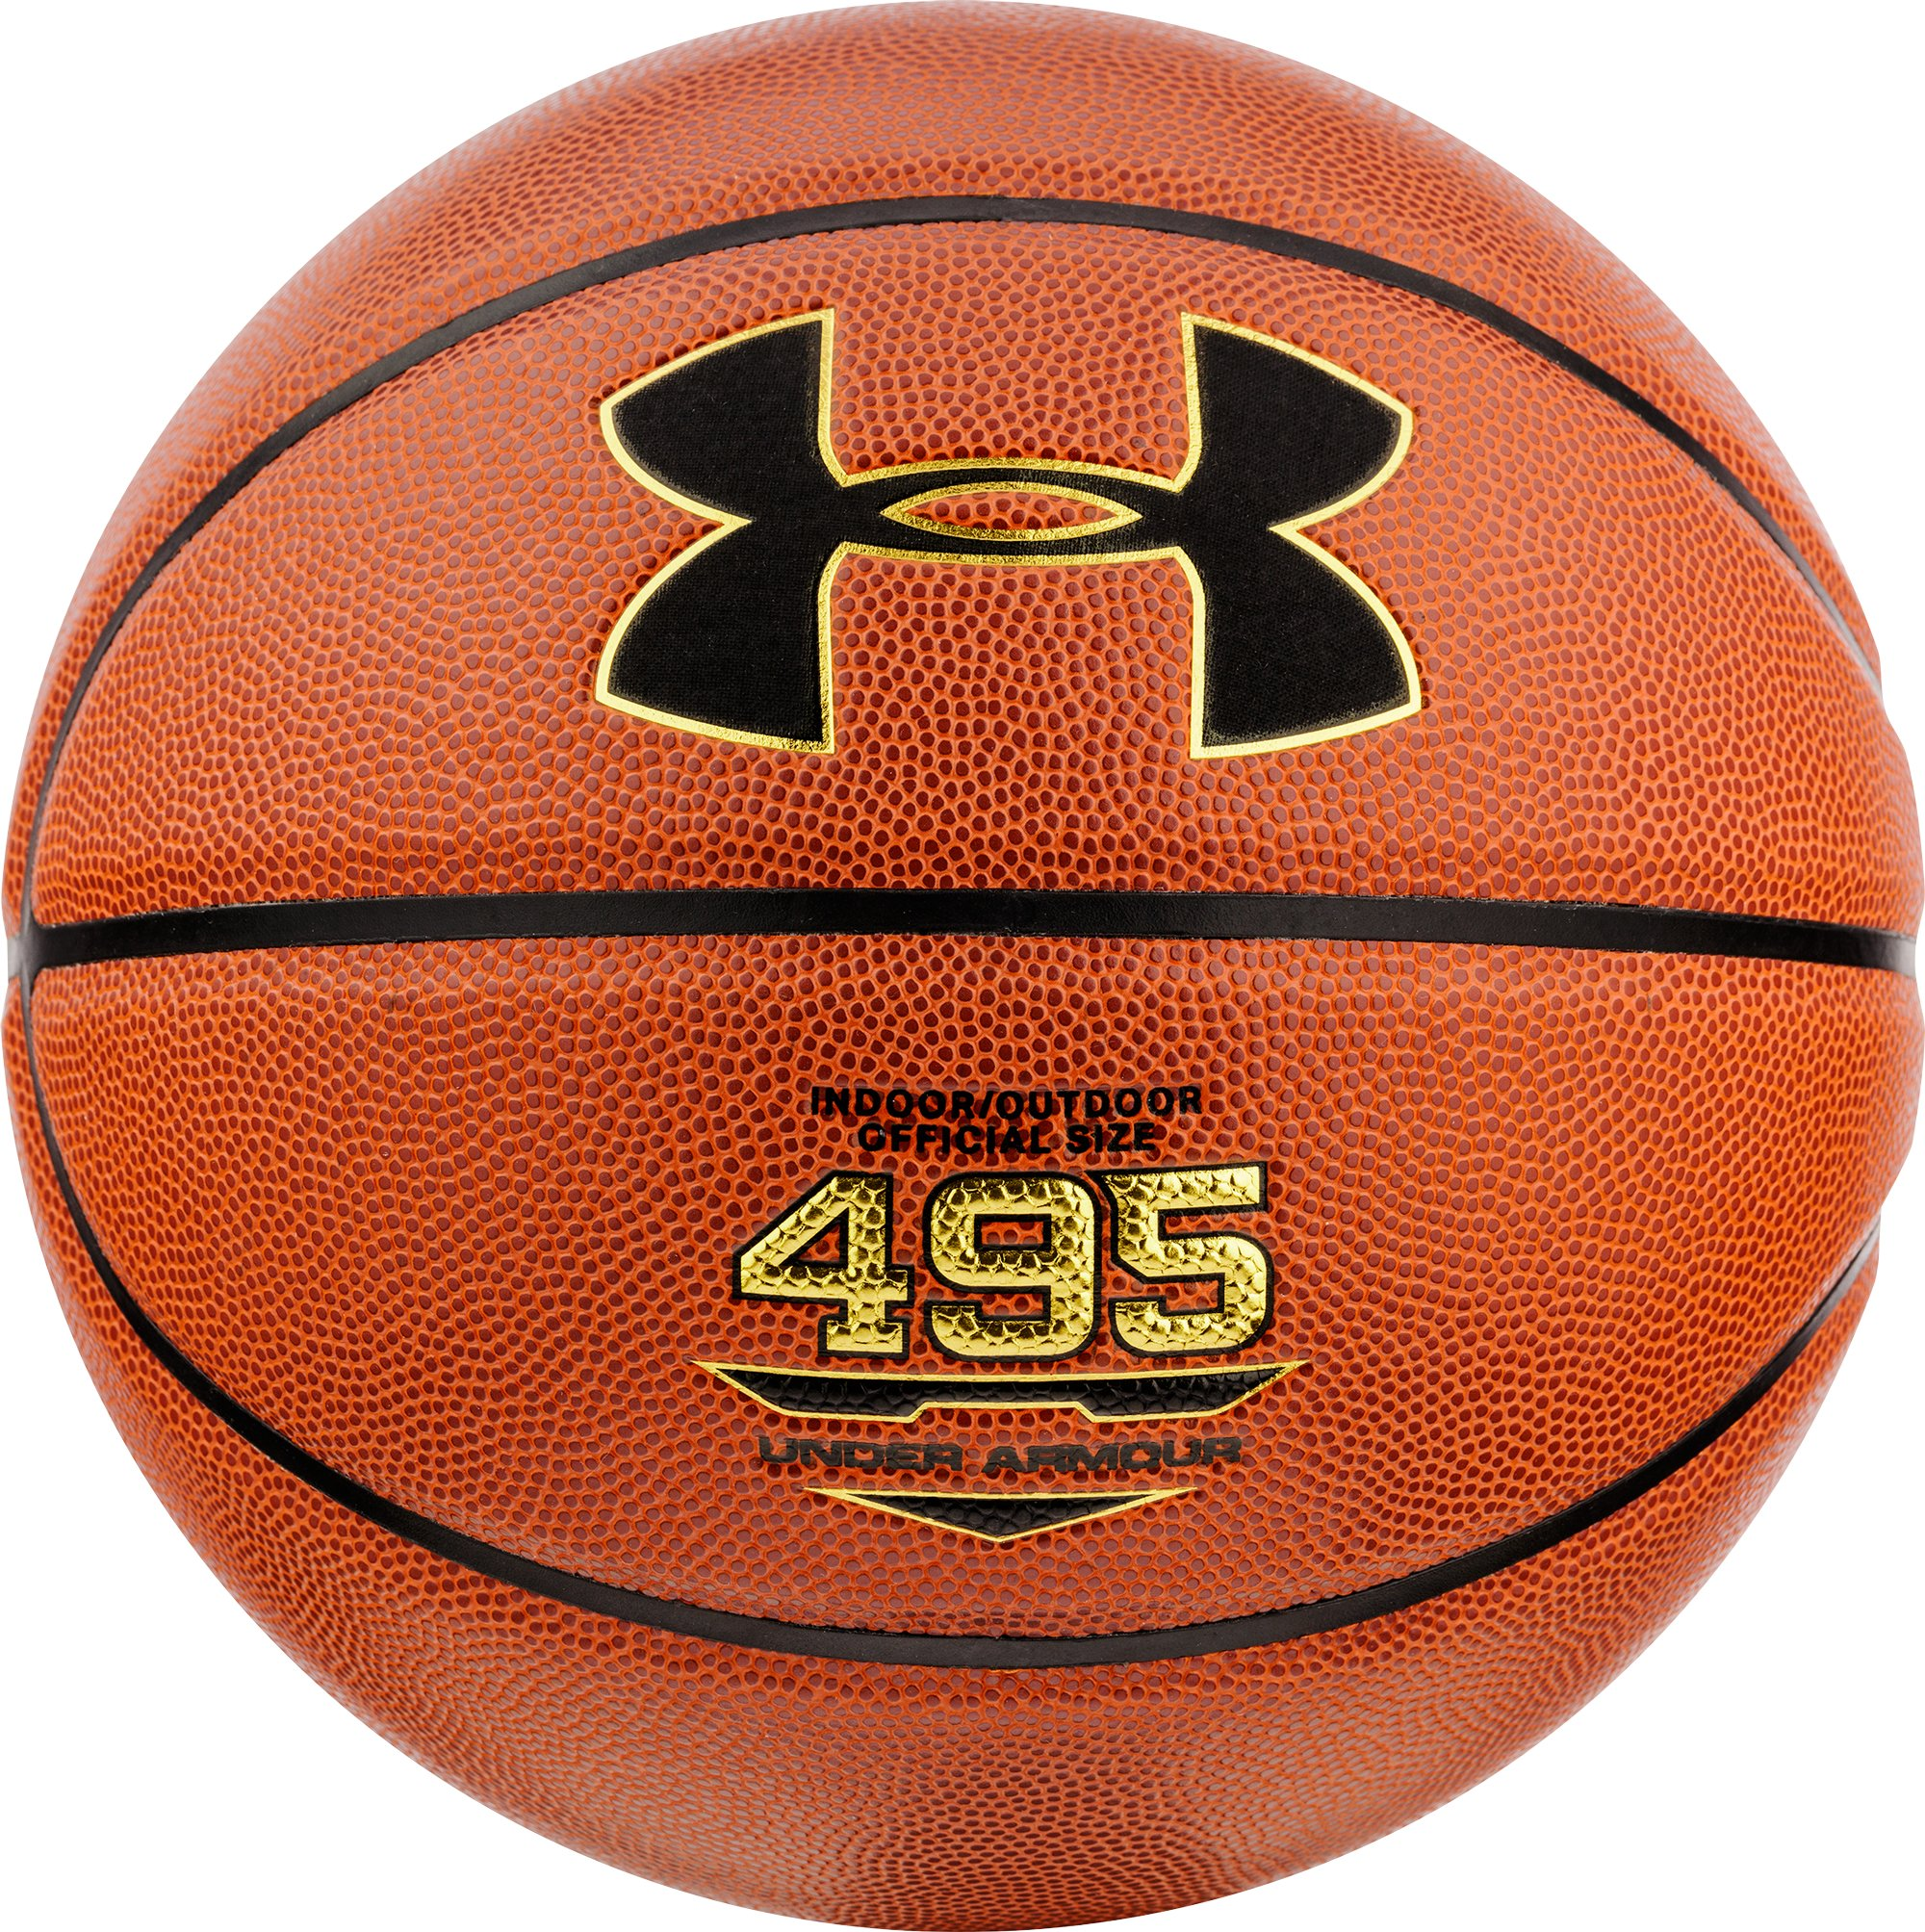 UA 495 Indoor/Outdoor Basketball 1 Color $30.00